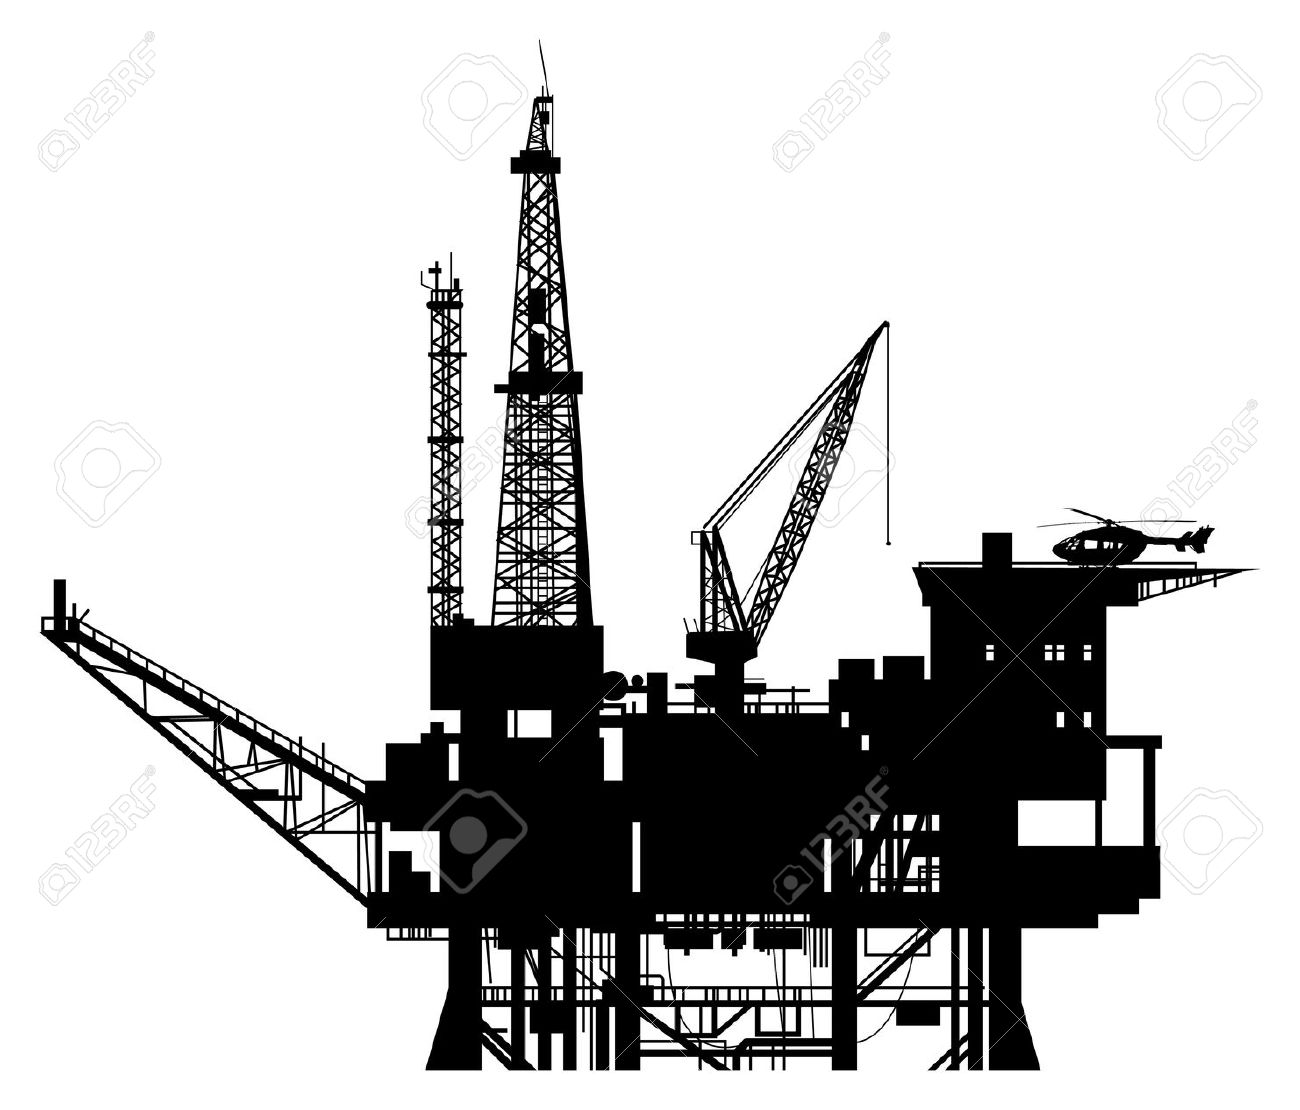 Oil rigs clipart clip art black and white stock 6+ Oil Rig Clipart | ClipartLook clip art black and white stock